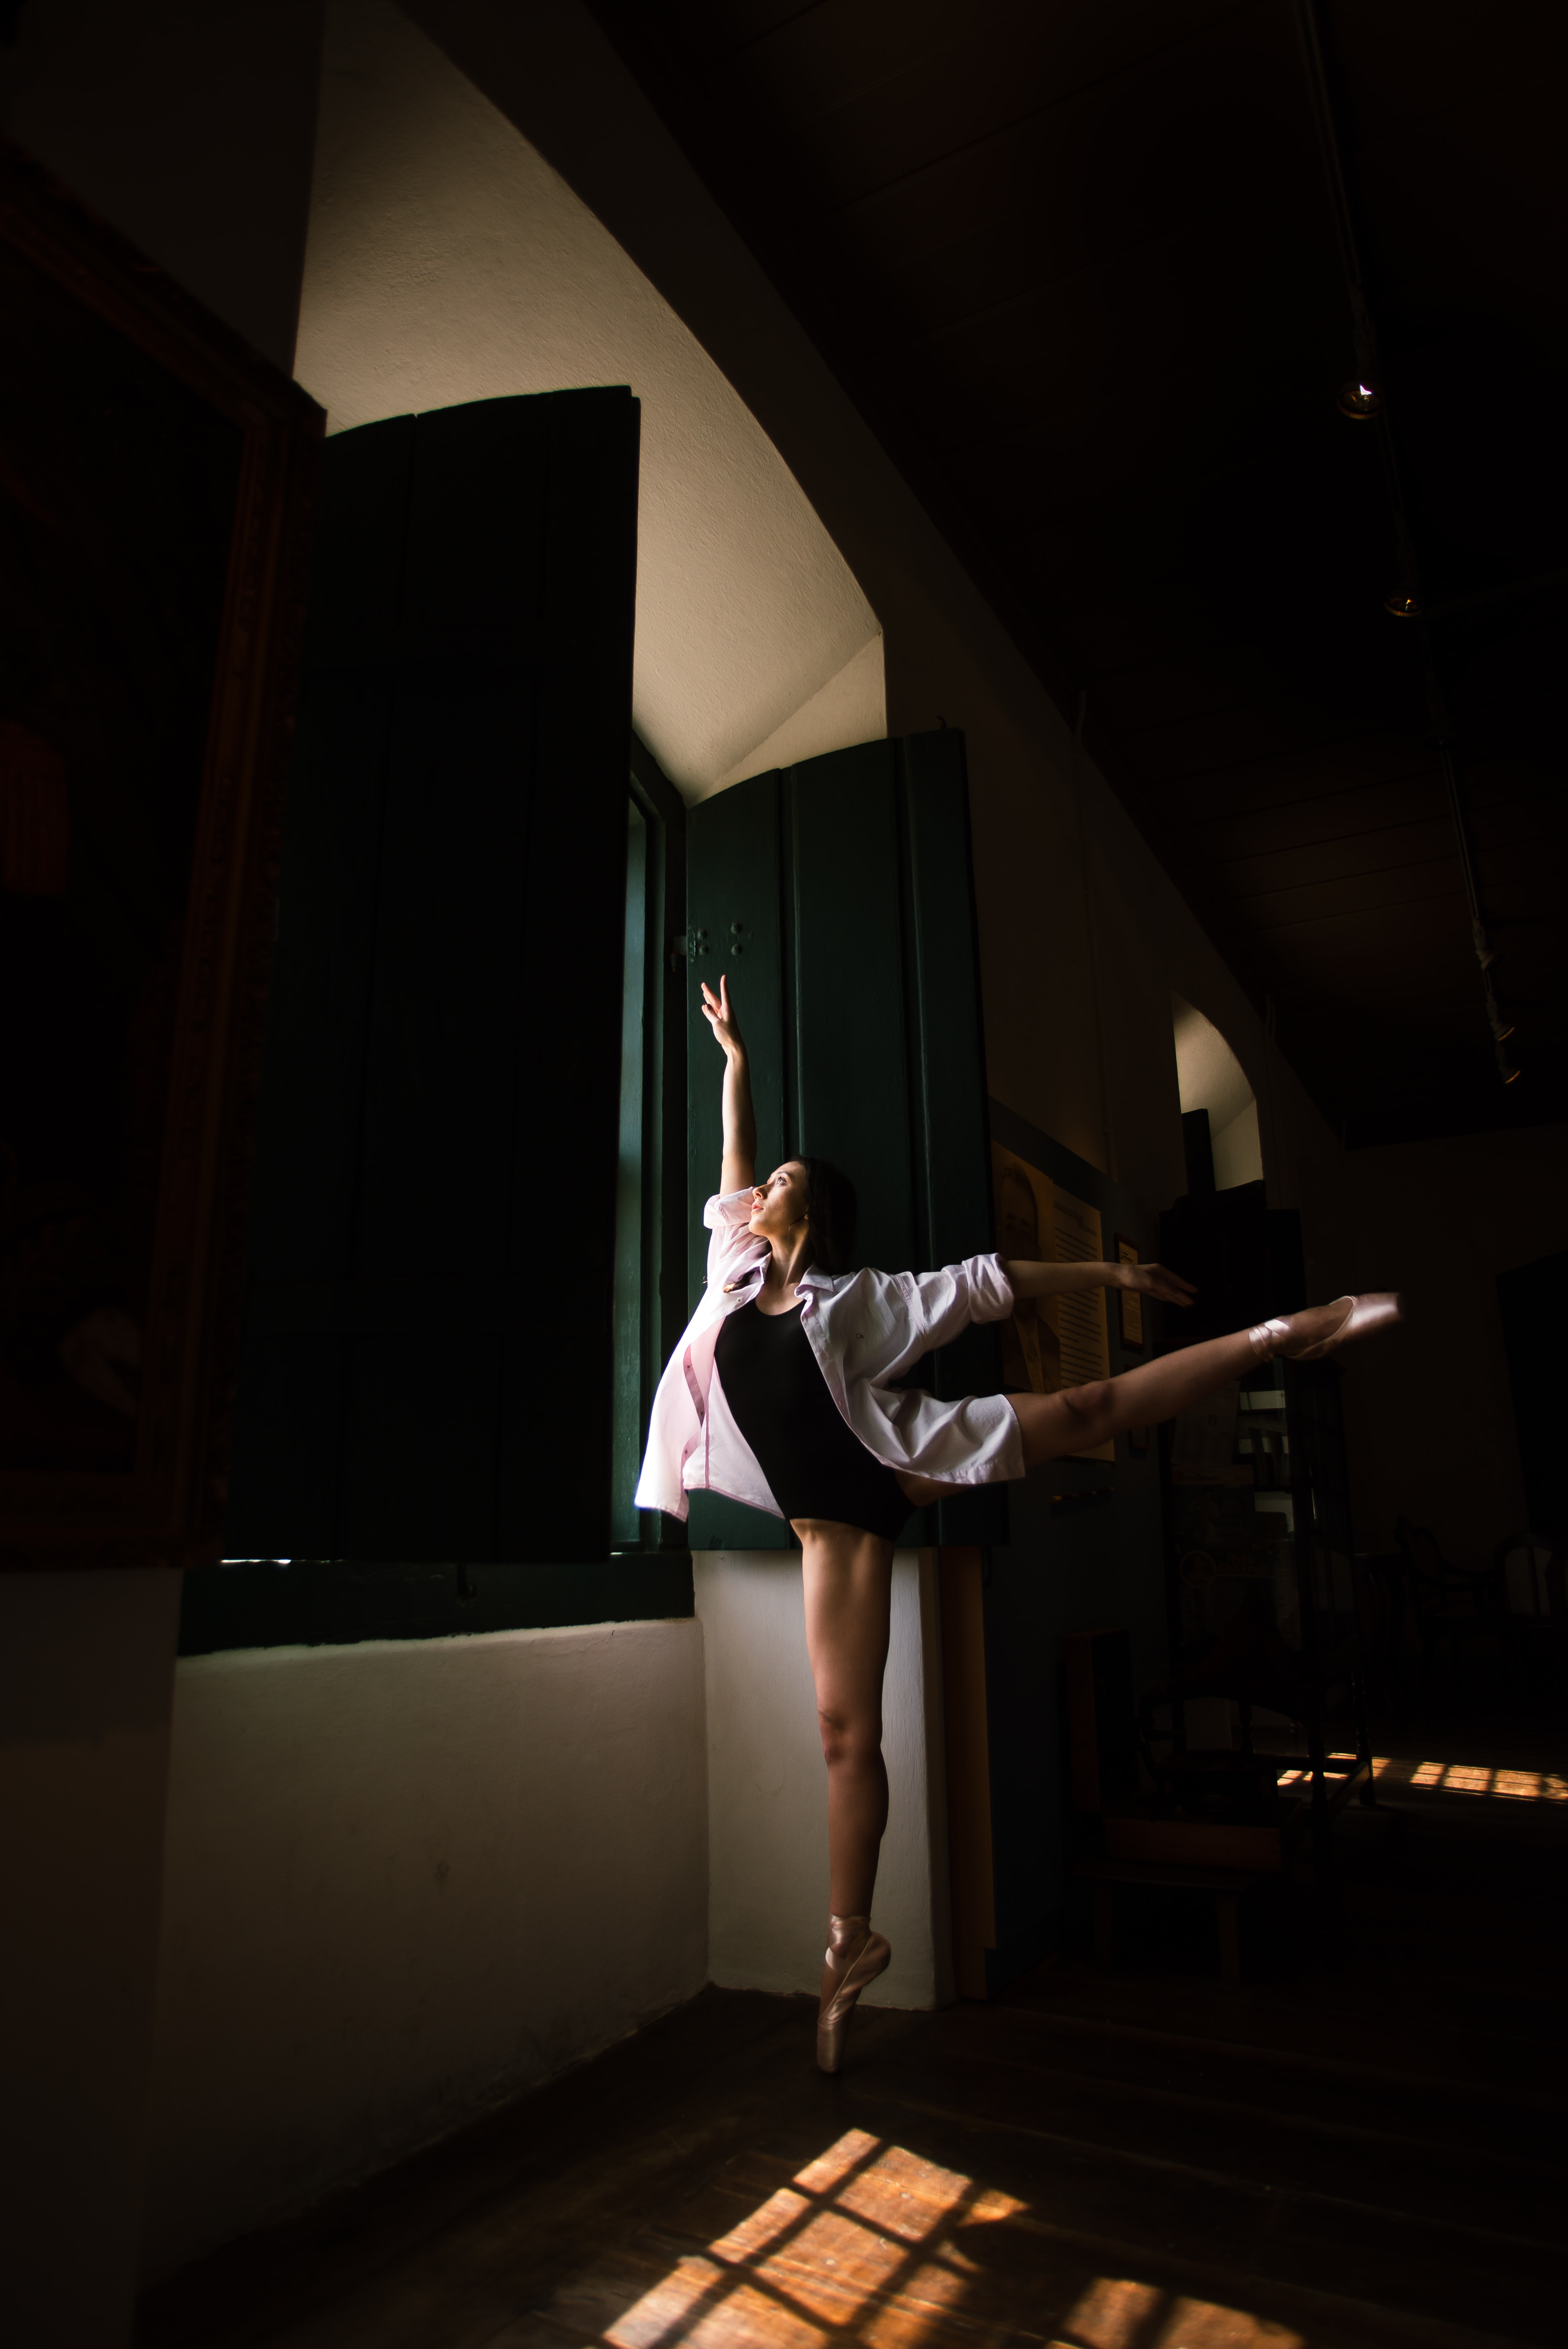 woman doing ballet pose in front of window during daytime